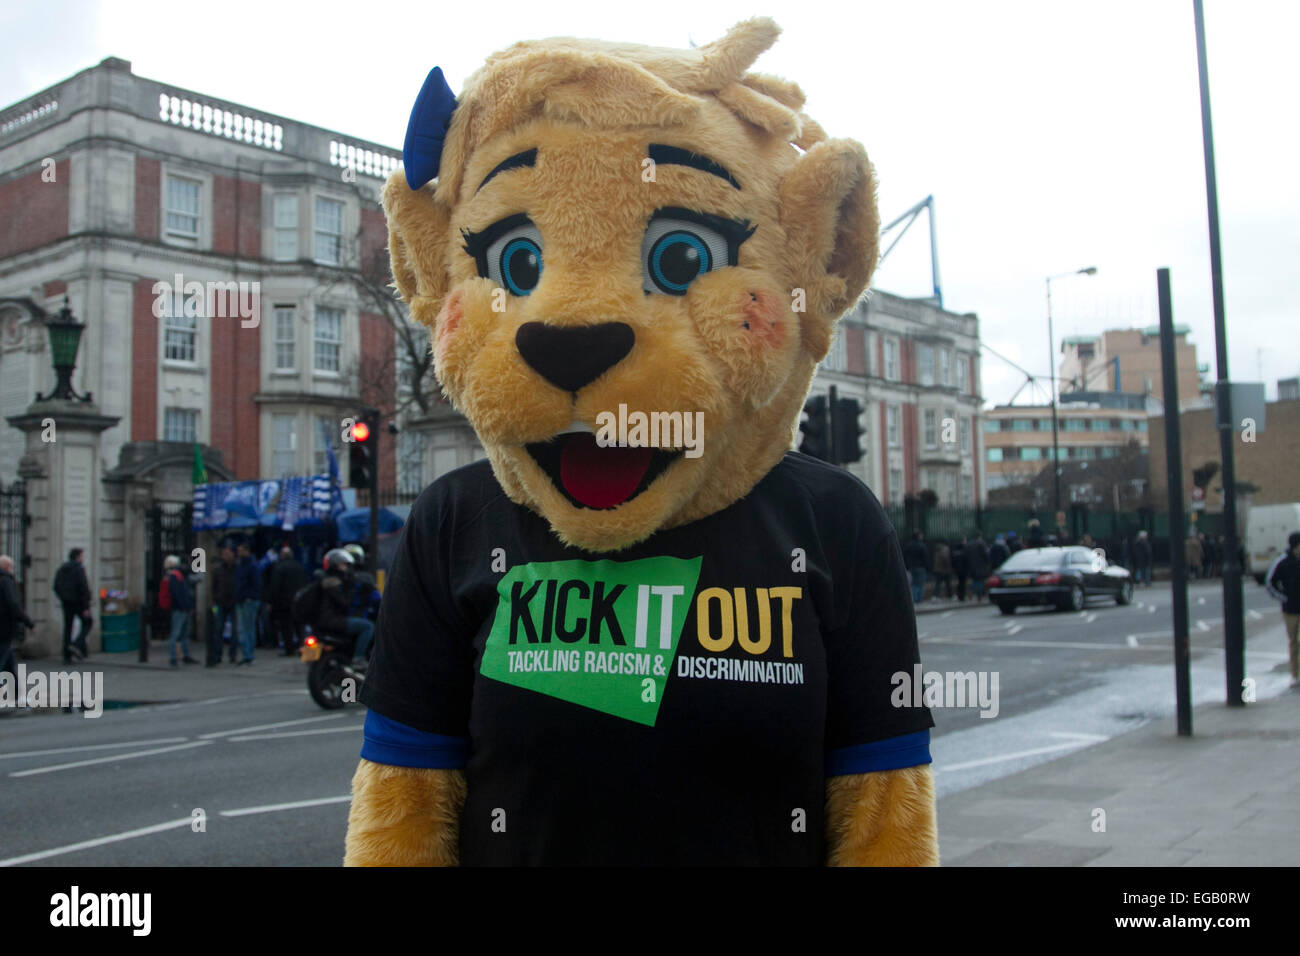 Stamford Bridge London,UK. 21st February 2015. Chelsea mascot wearing Kick It Out racism shirt. Chelsea football - Stock Image